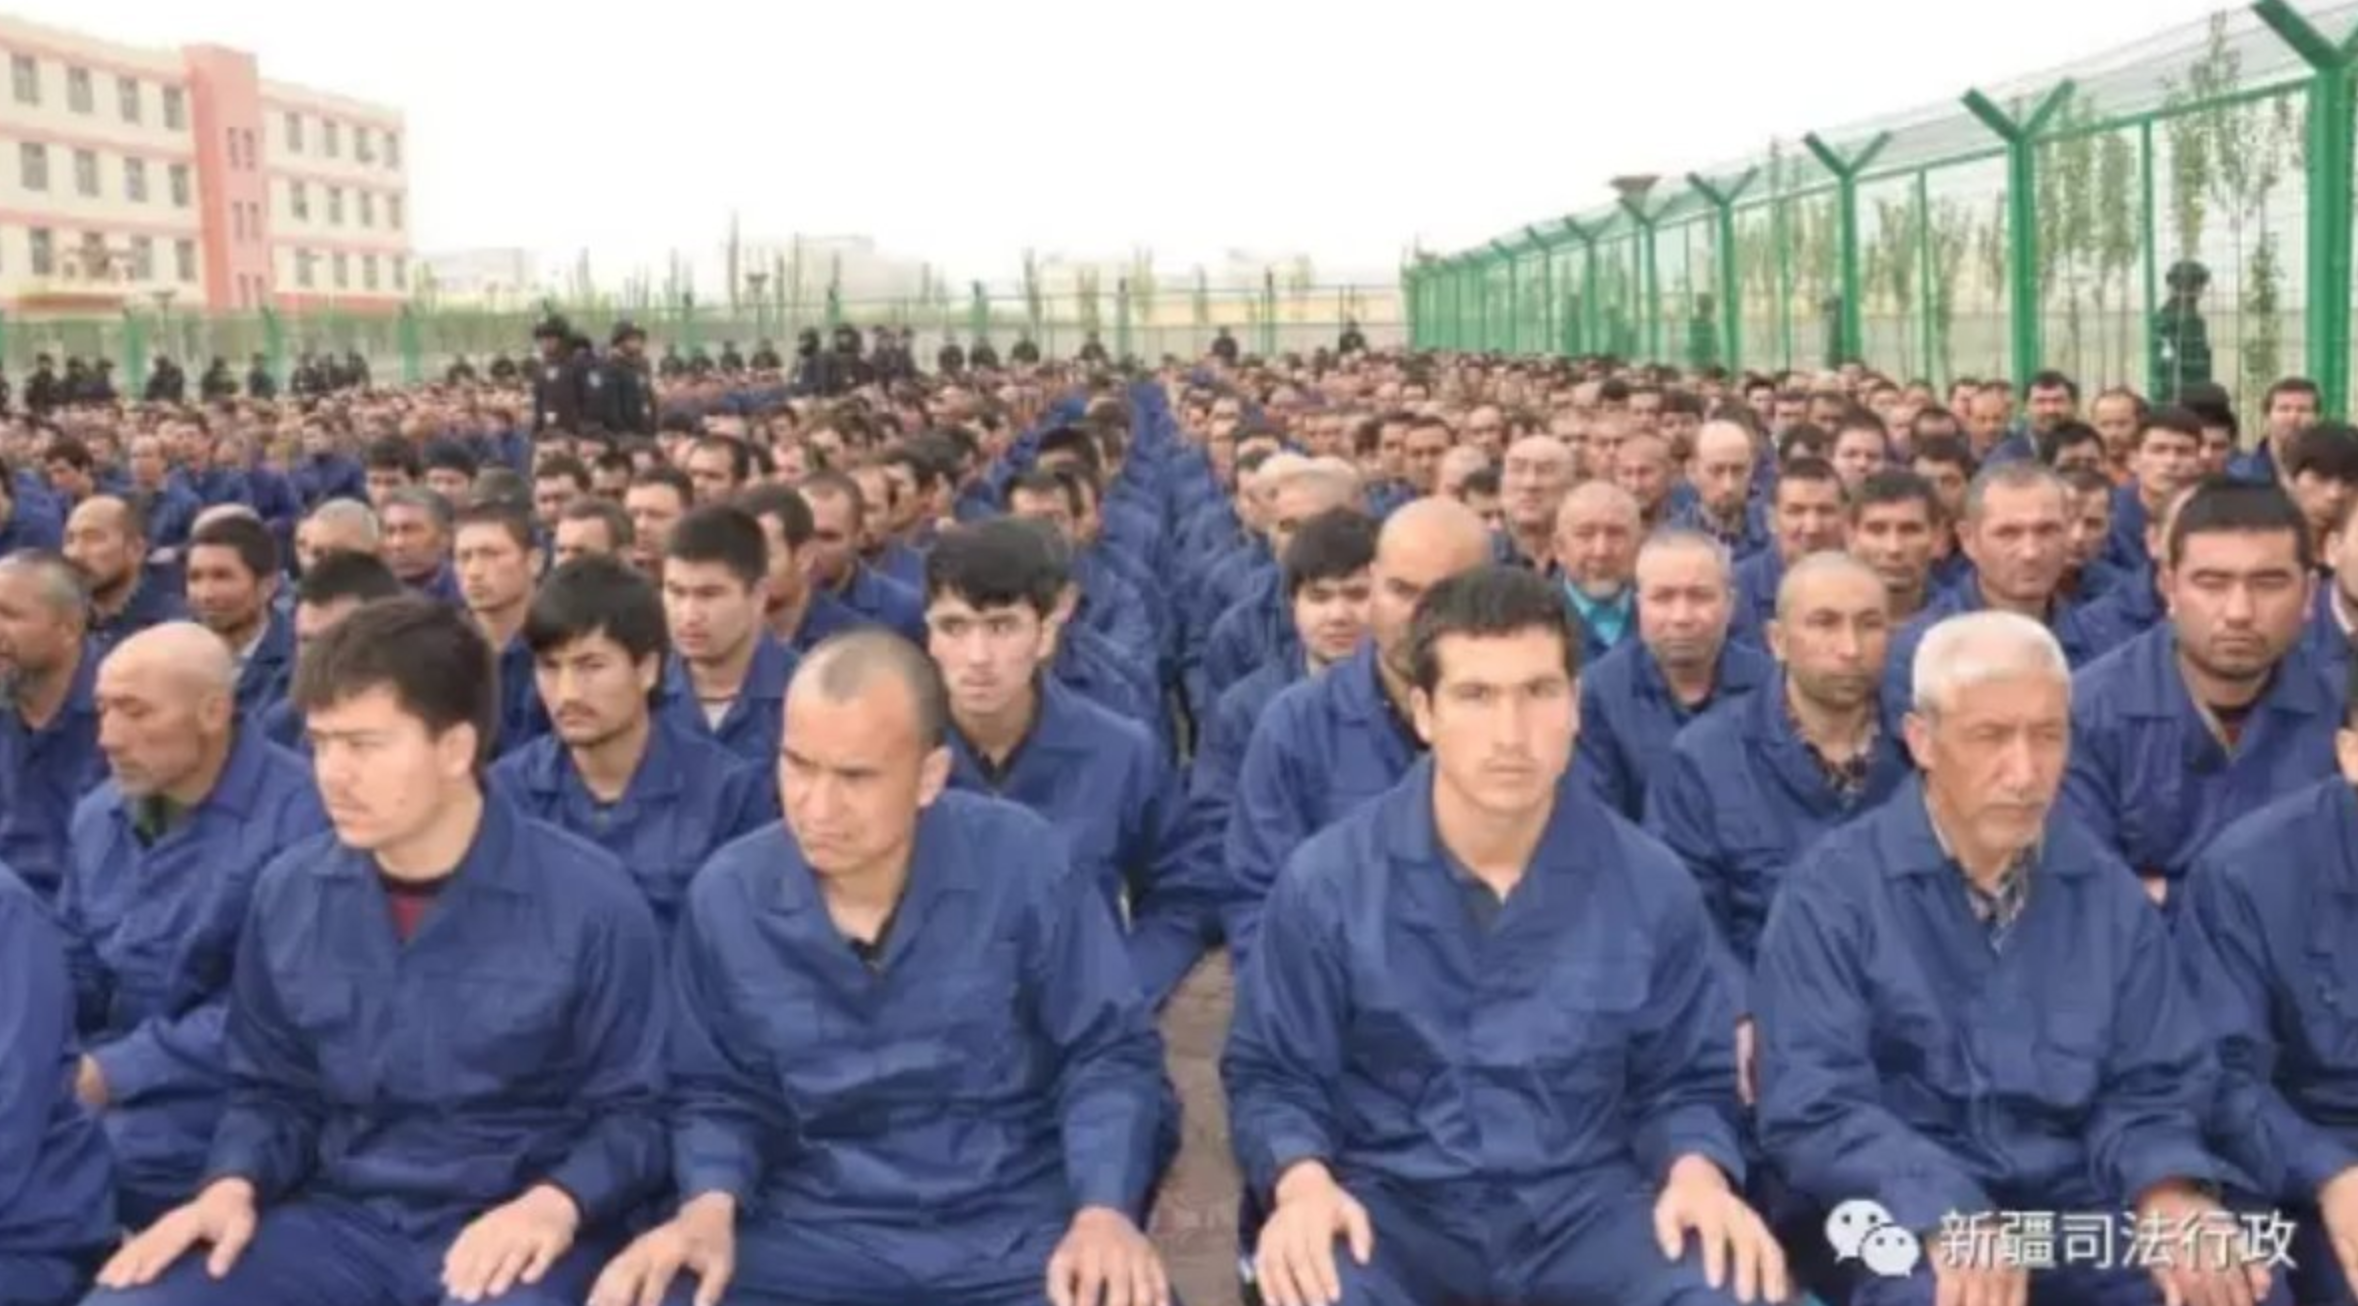 Trump Silent On Mass Detentions, As China Razes Muslim Communities To Build A Loyal City (#GotBitcoin?)